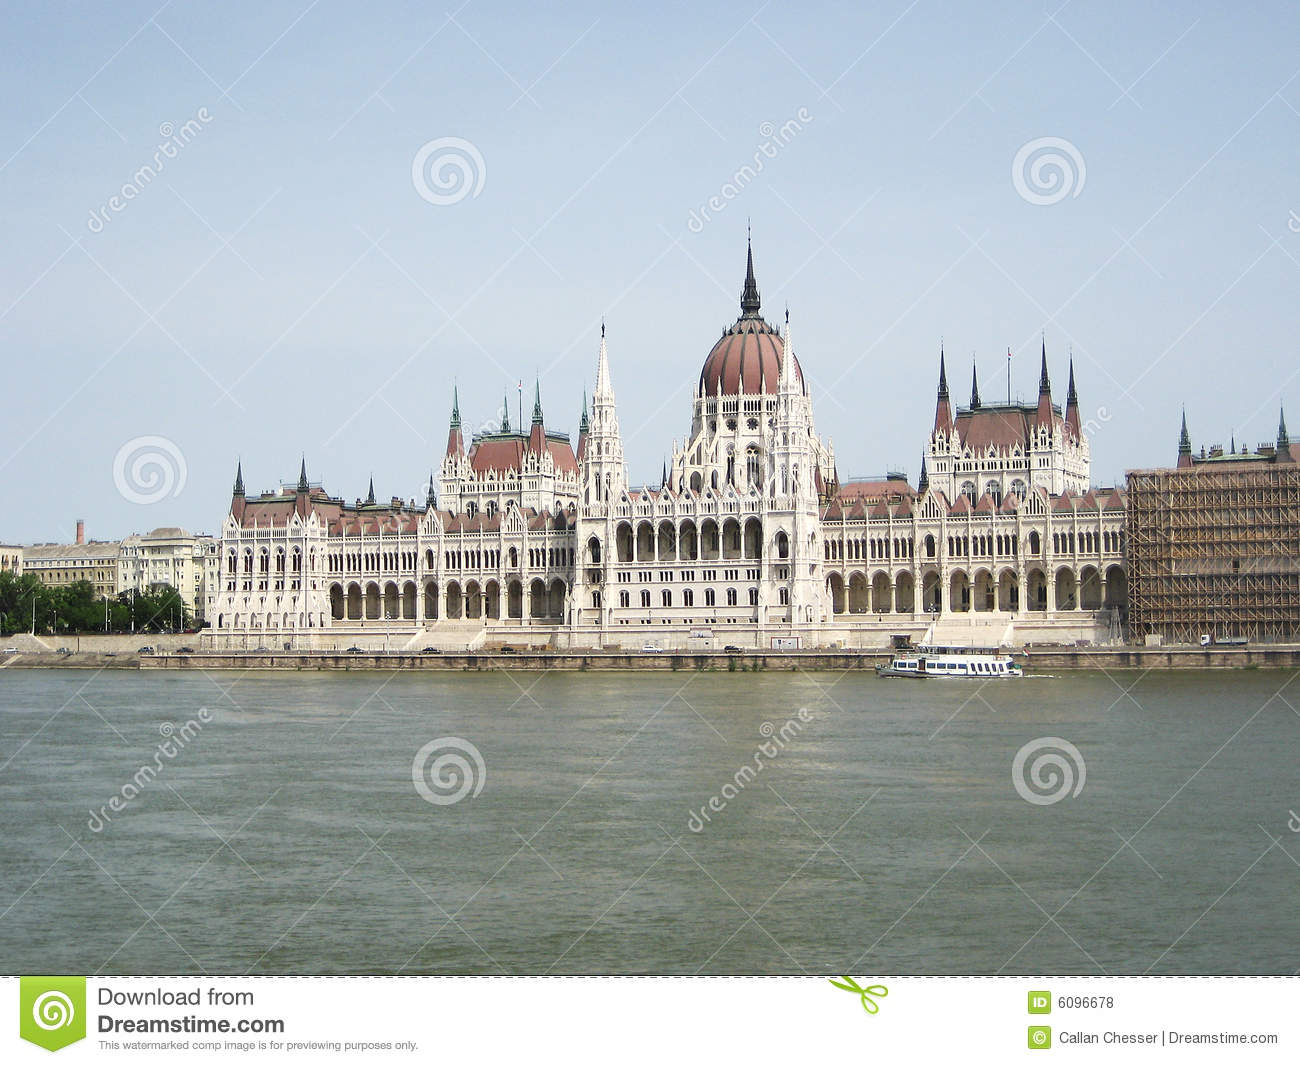 The Danube and Budapest Parliament